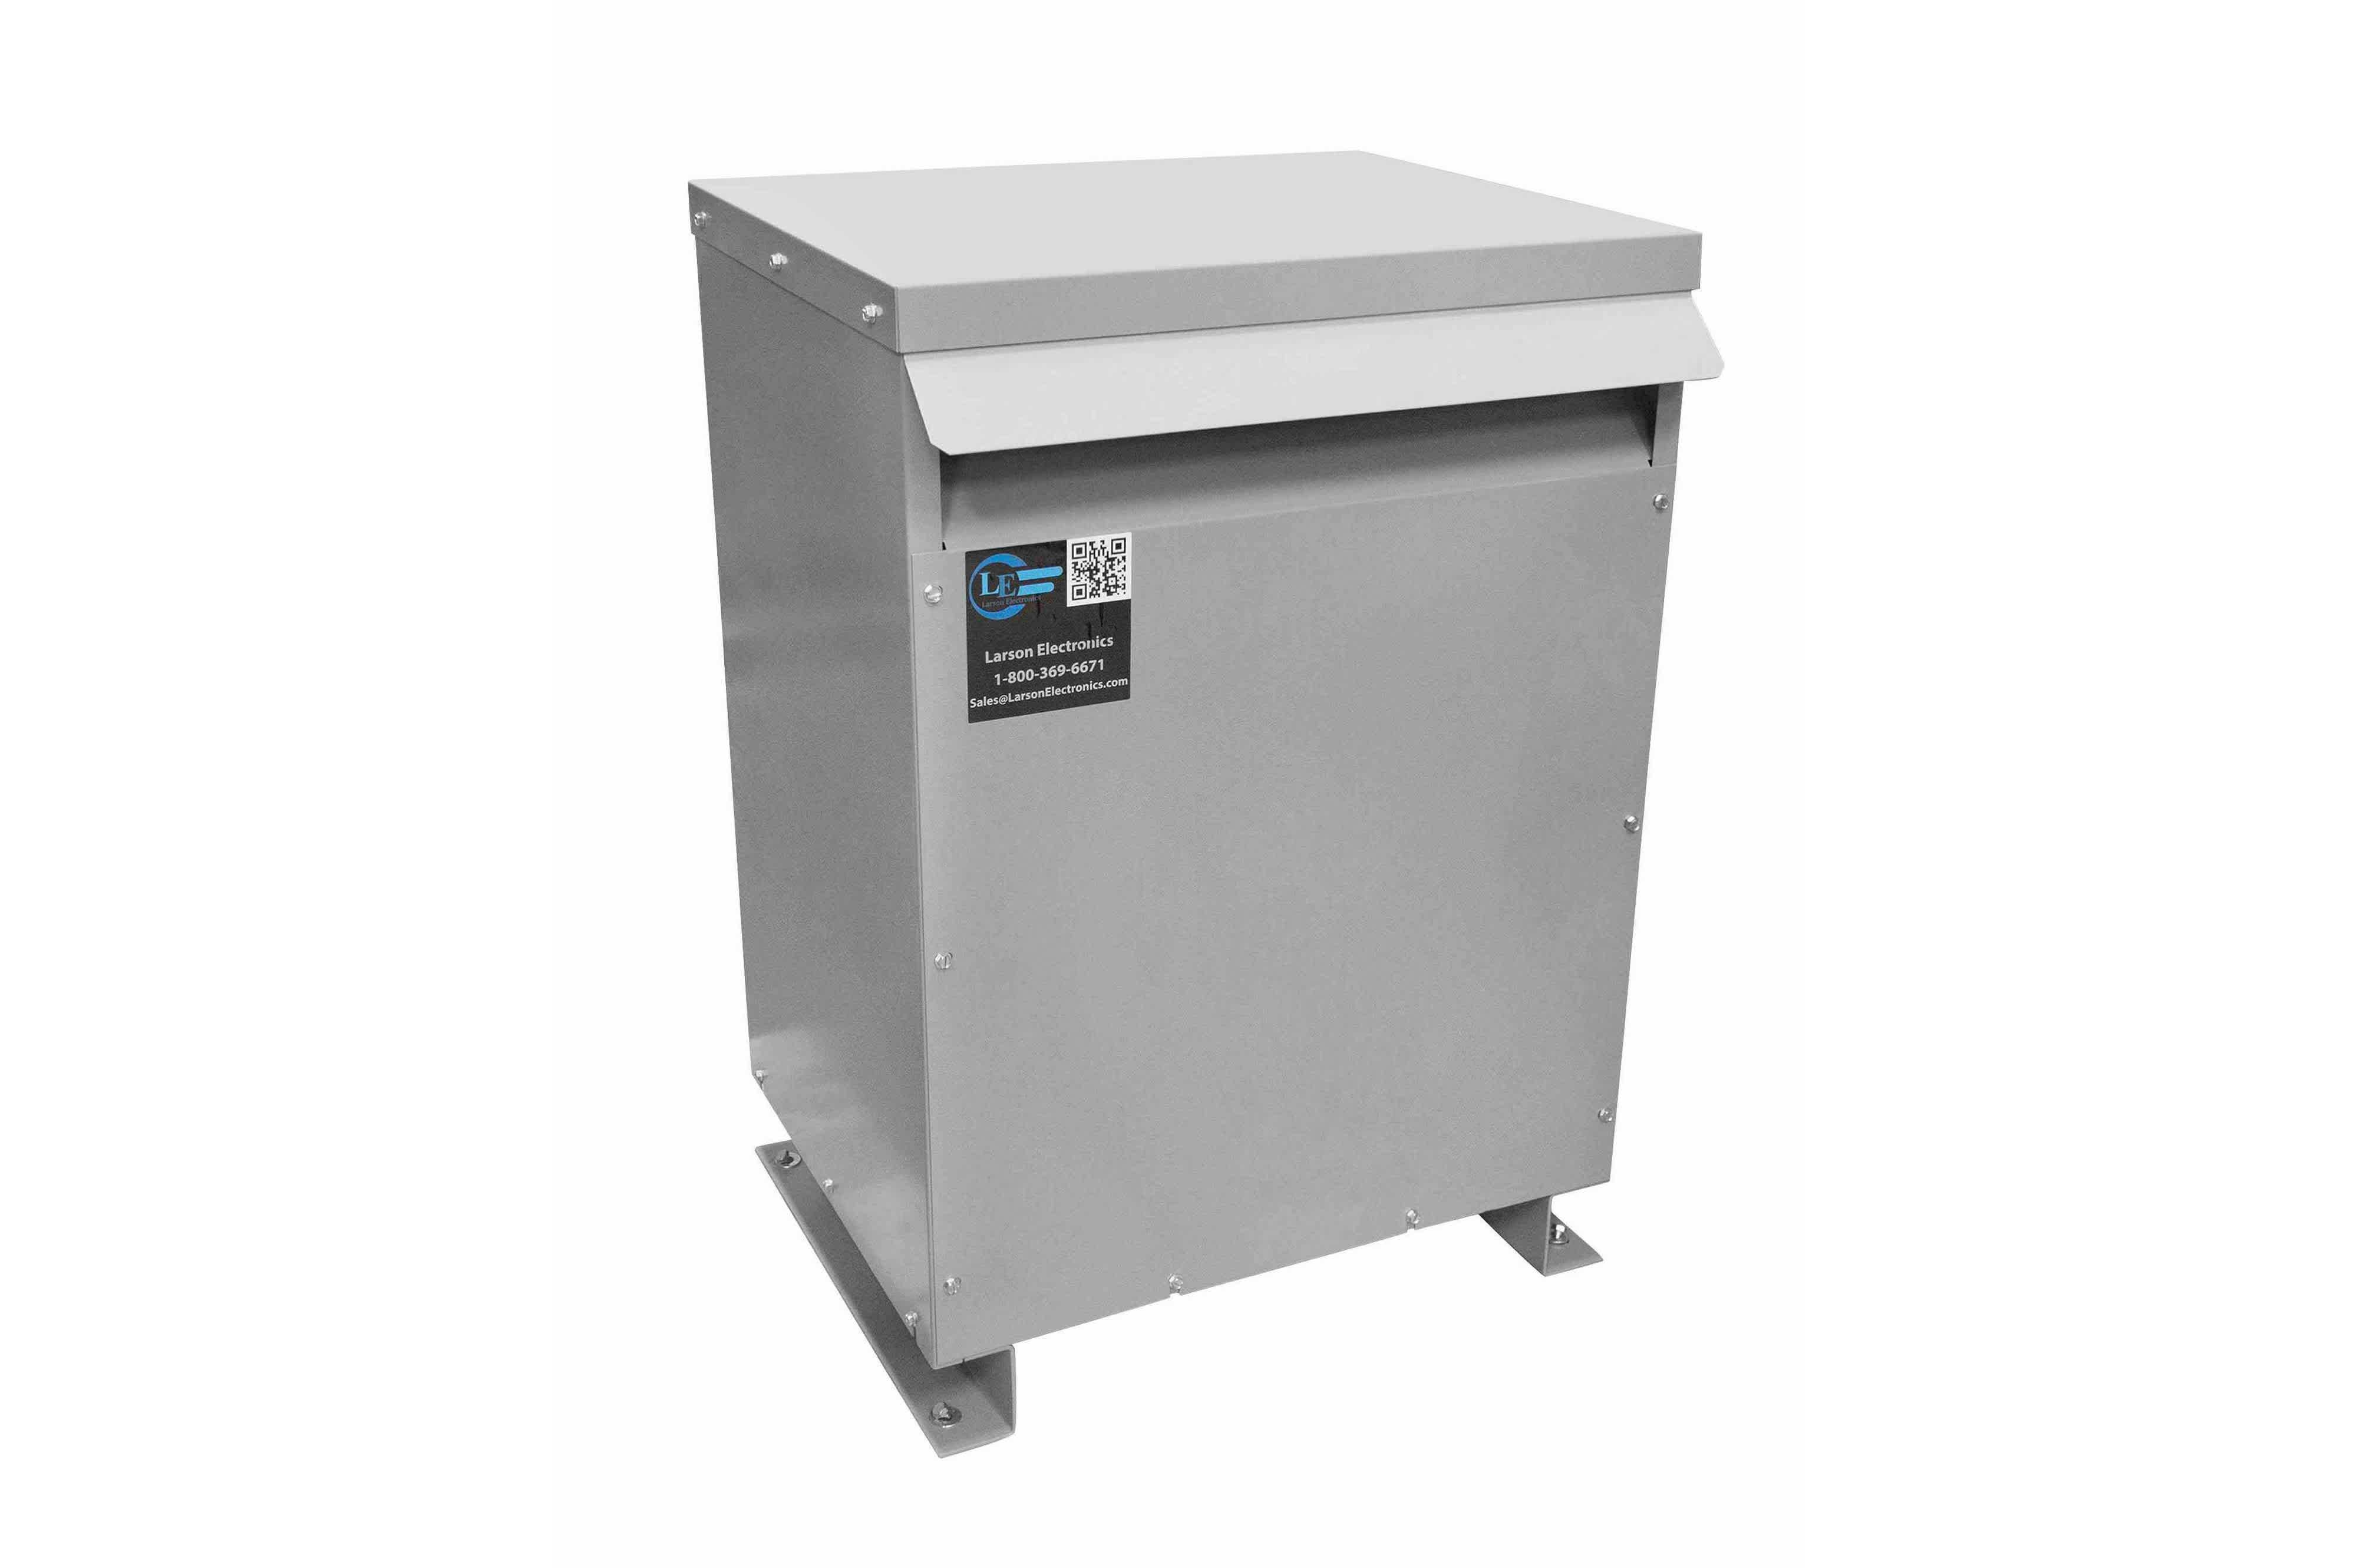 42.5 kVA 3PH Isolation Transformer, 440V Delta Primary, 208V Delta Secondary, N3R, Ventilated, 60 Hz